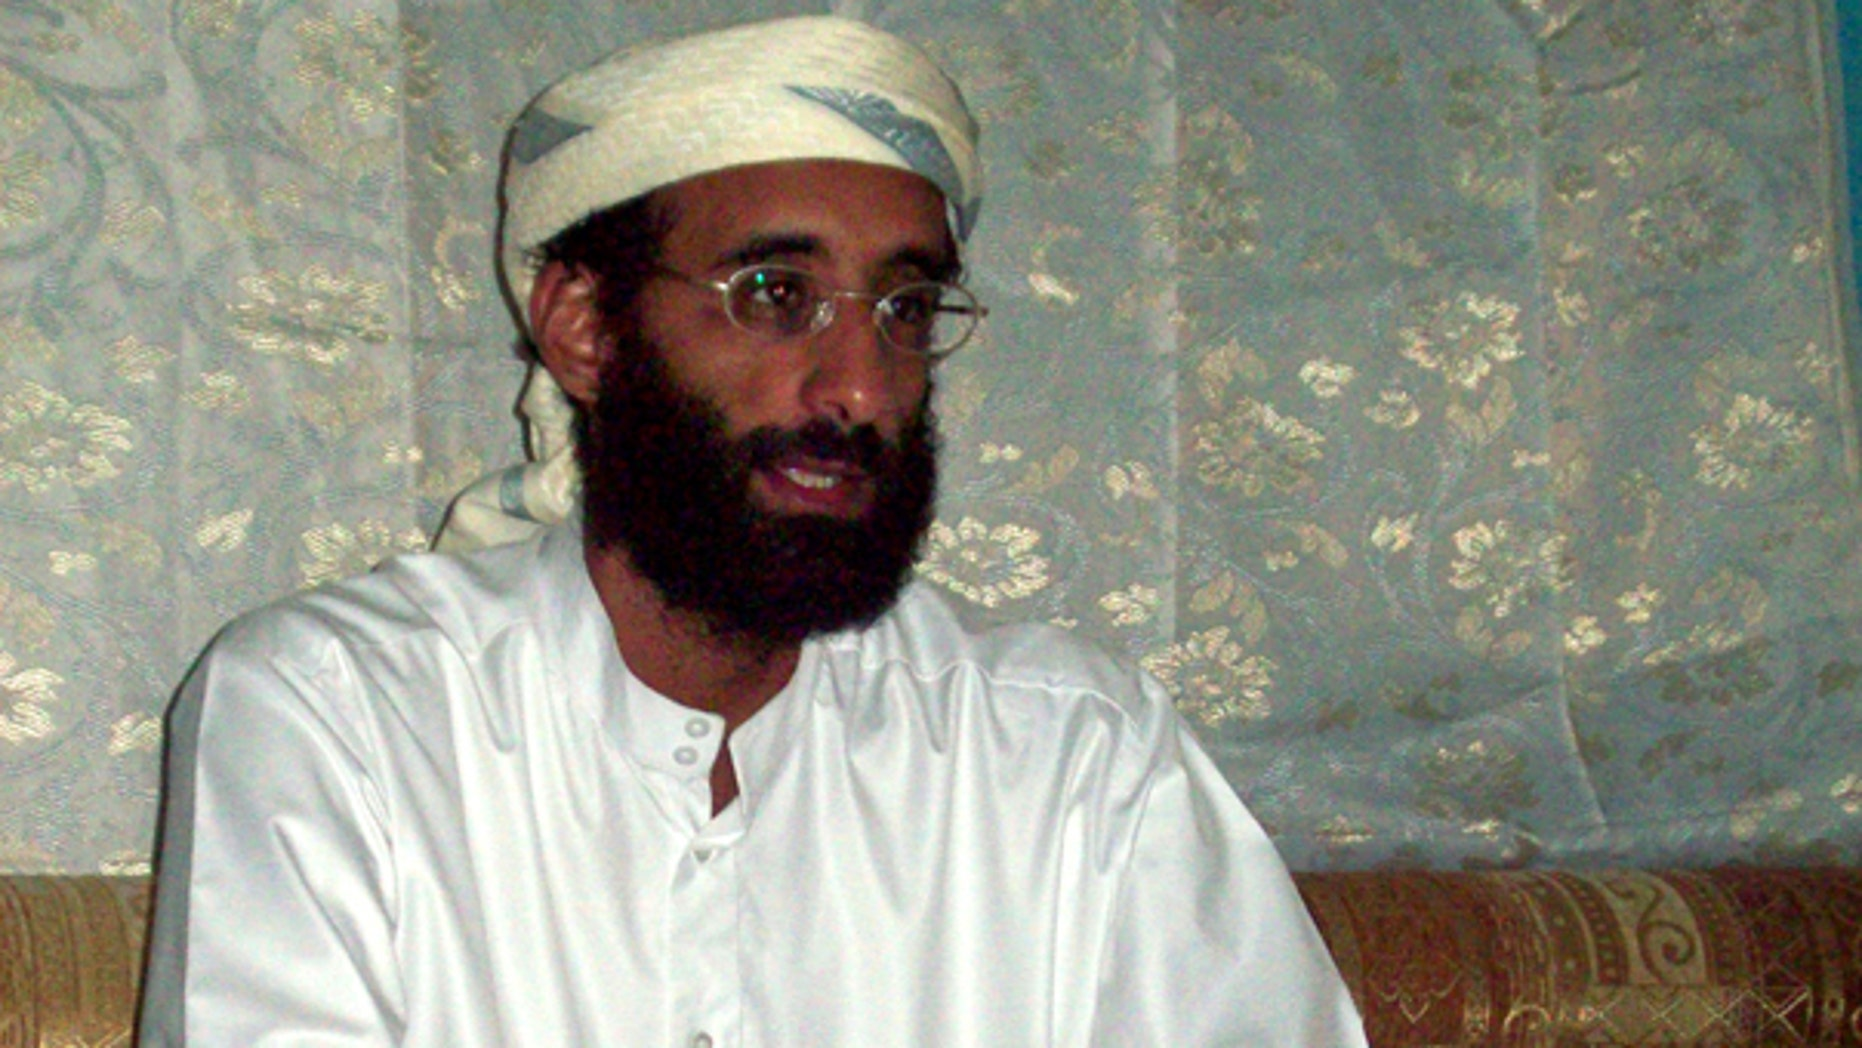 This October 2008 file photo by Muhammad ud-Deen shows Imam Anwar al-Awlaki in Yemen.